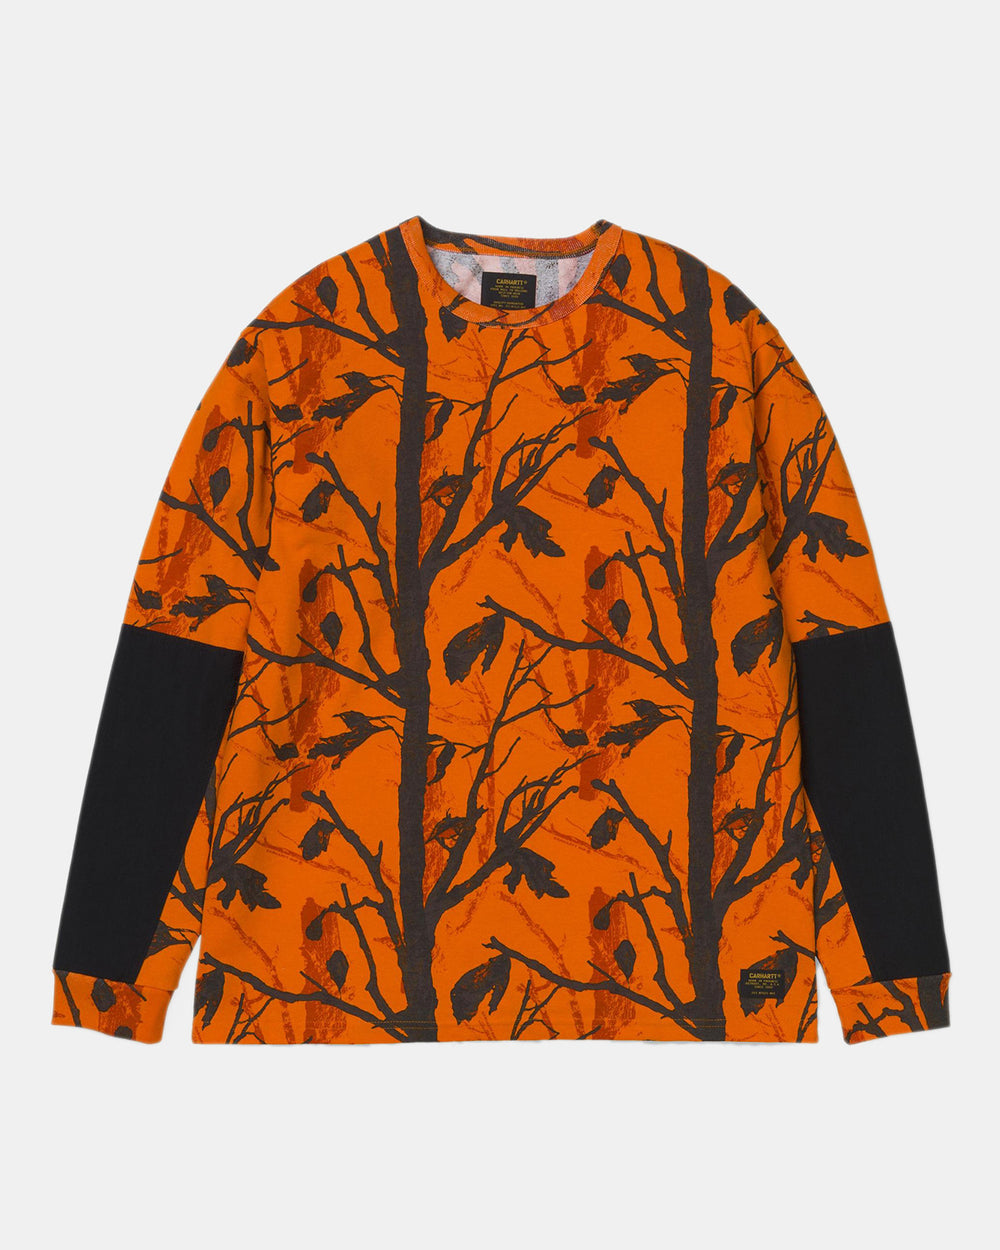 Carhartt WIP - Klicks Long Sleeve Tee (Orange Tree Camo)